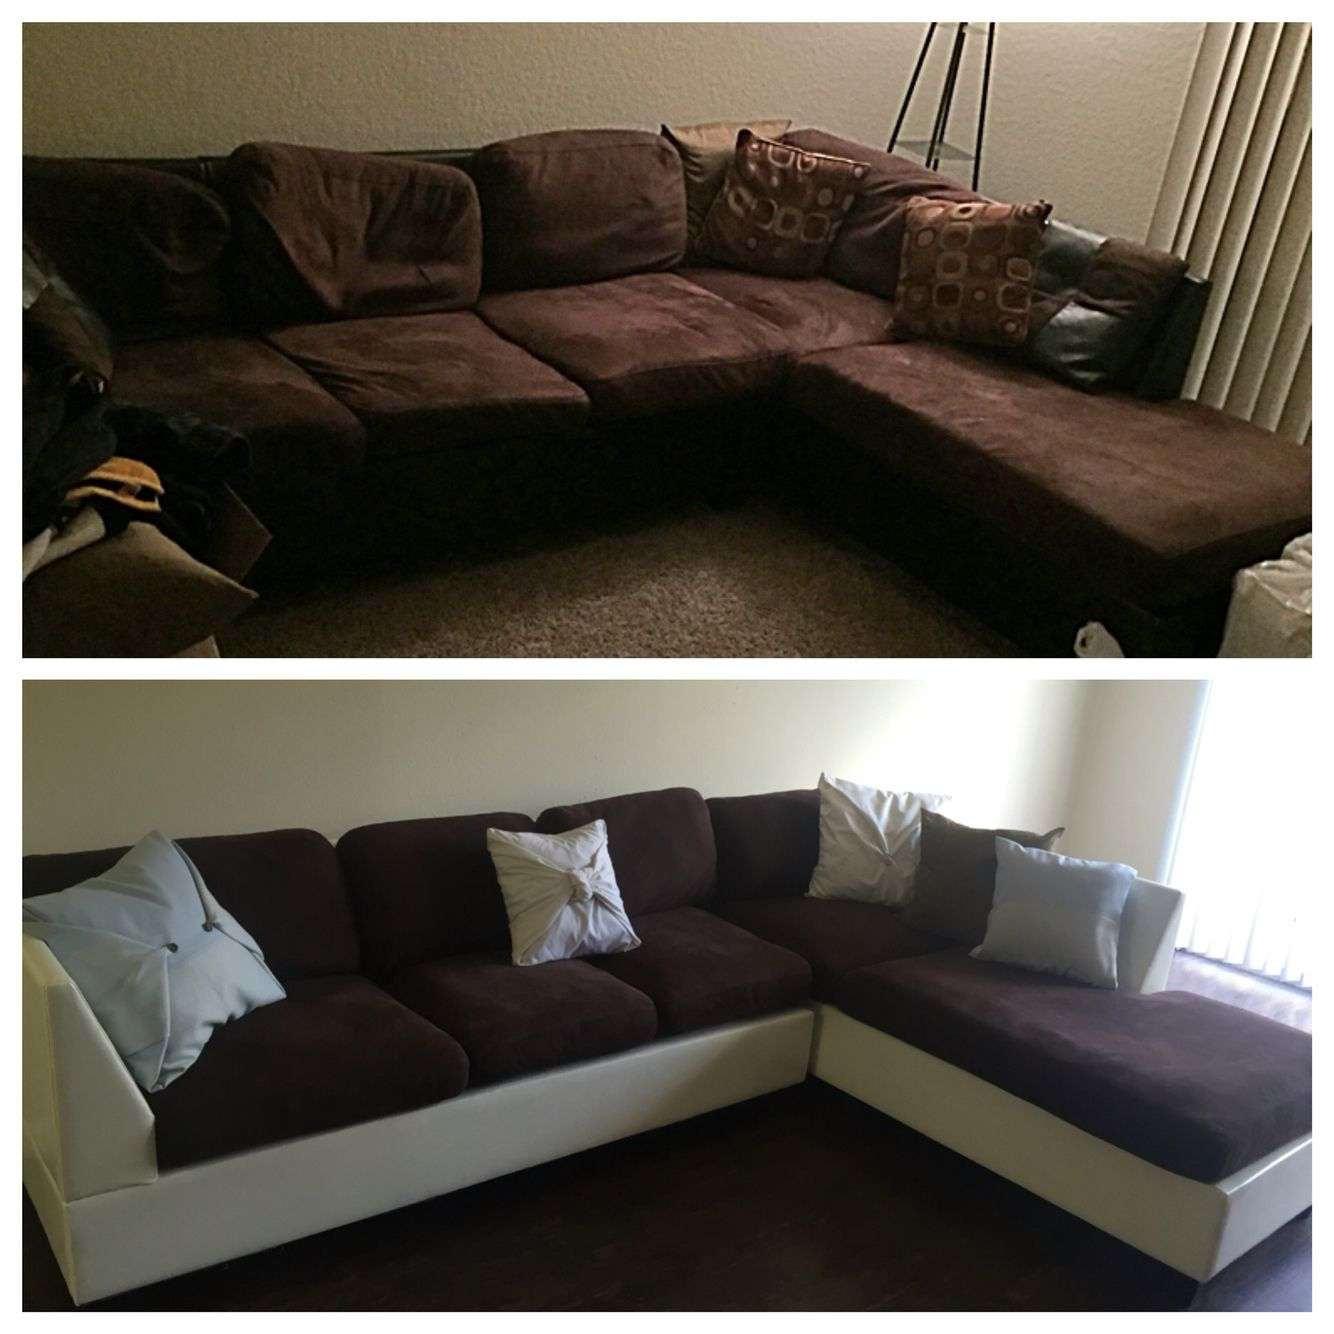 Incredible Couch Makeover Re Stuffed Cushions Painted Outer Part Of Machost Co Dining Chair Design Ideas Machostcouk